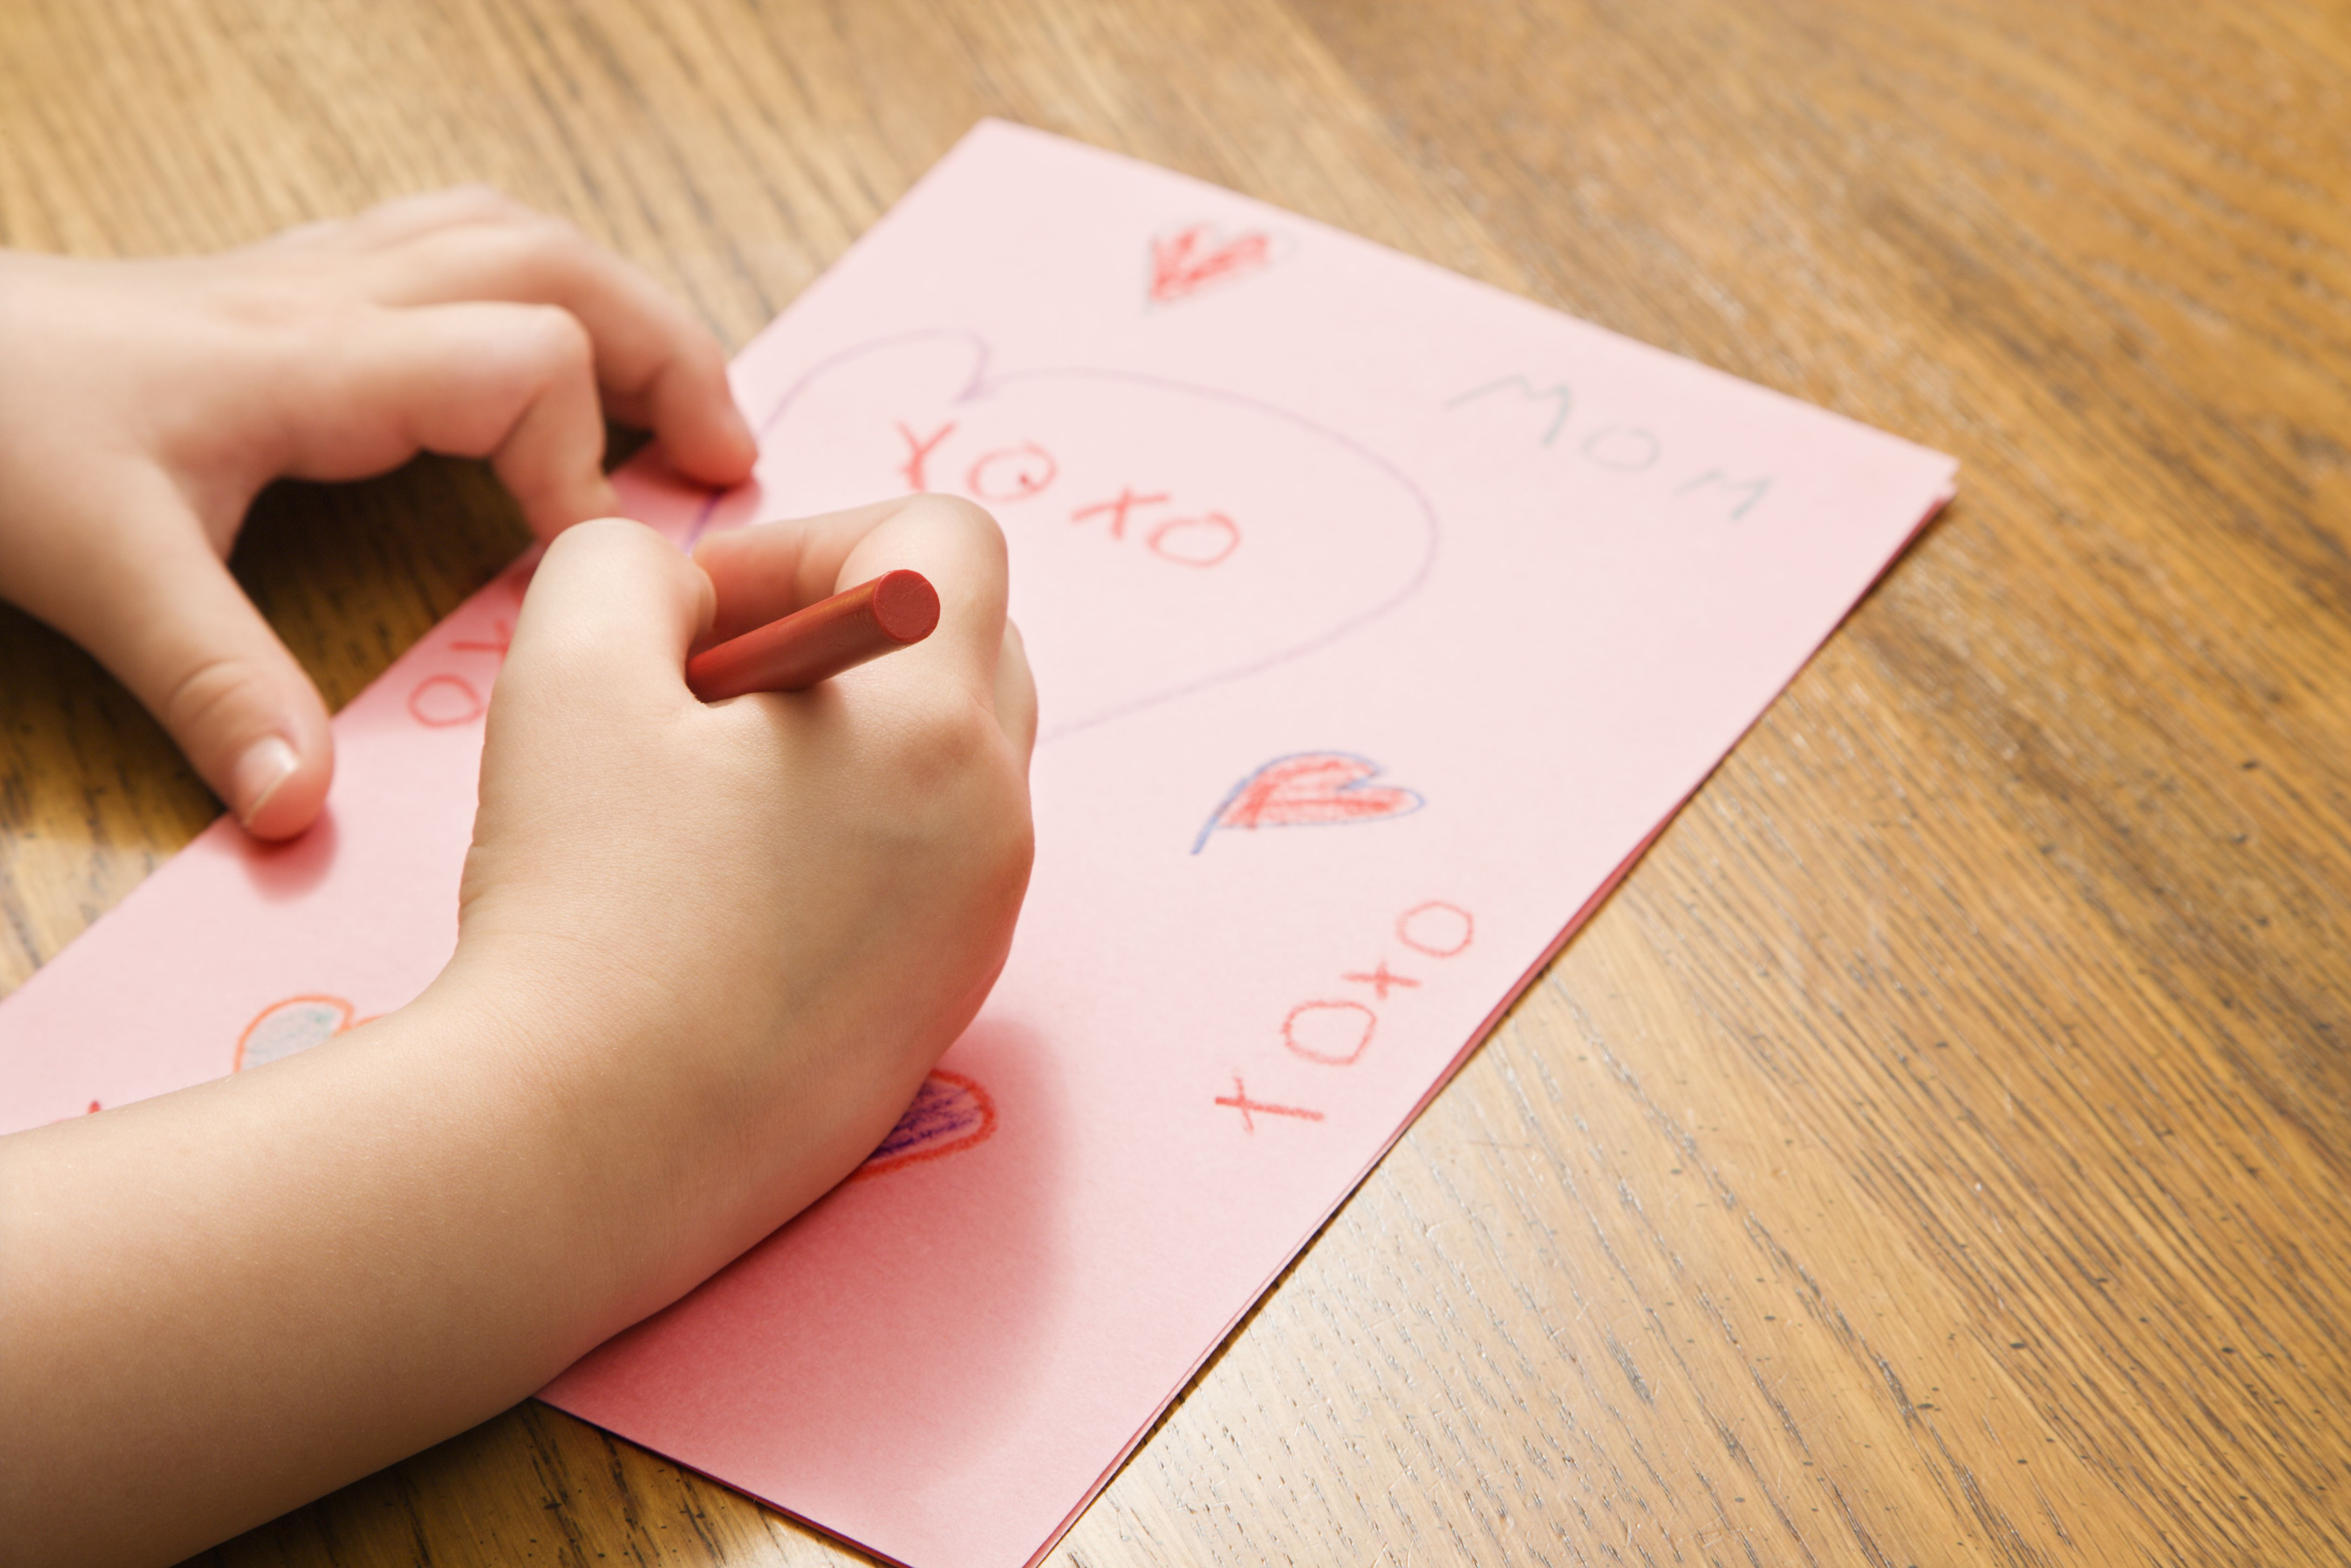 child hands drawing on paper with crayons 5a53a8255b6e dc2